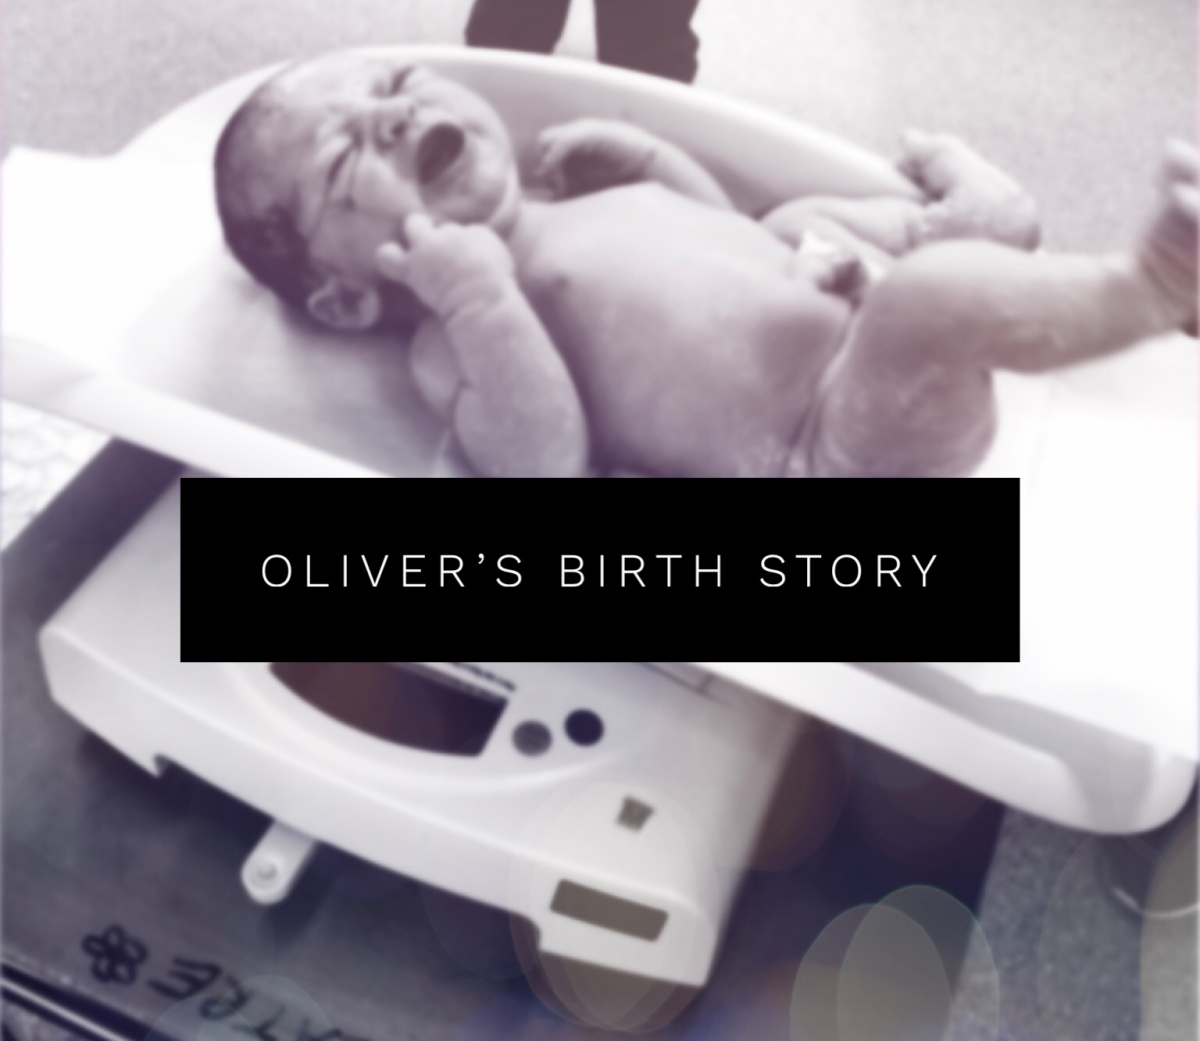 Oliver's Birth Story